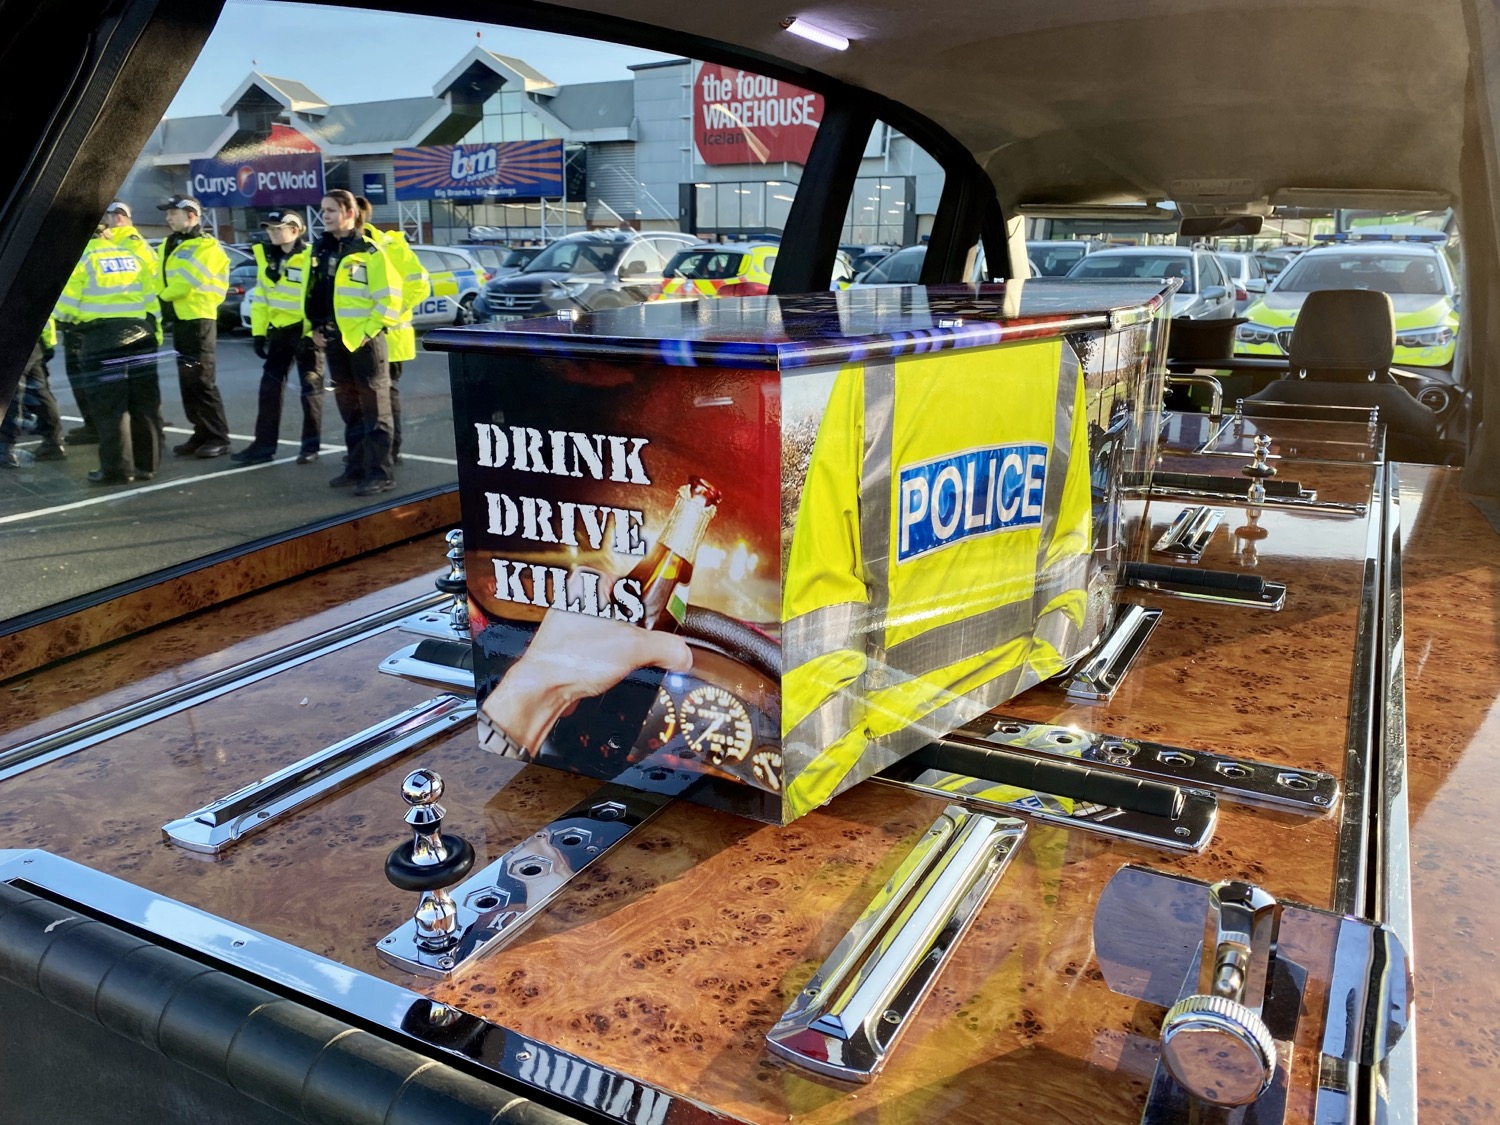 Enjoy New Year's Eve safely. Don't drink and drive